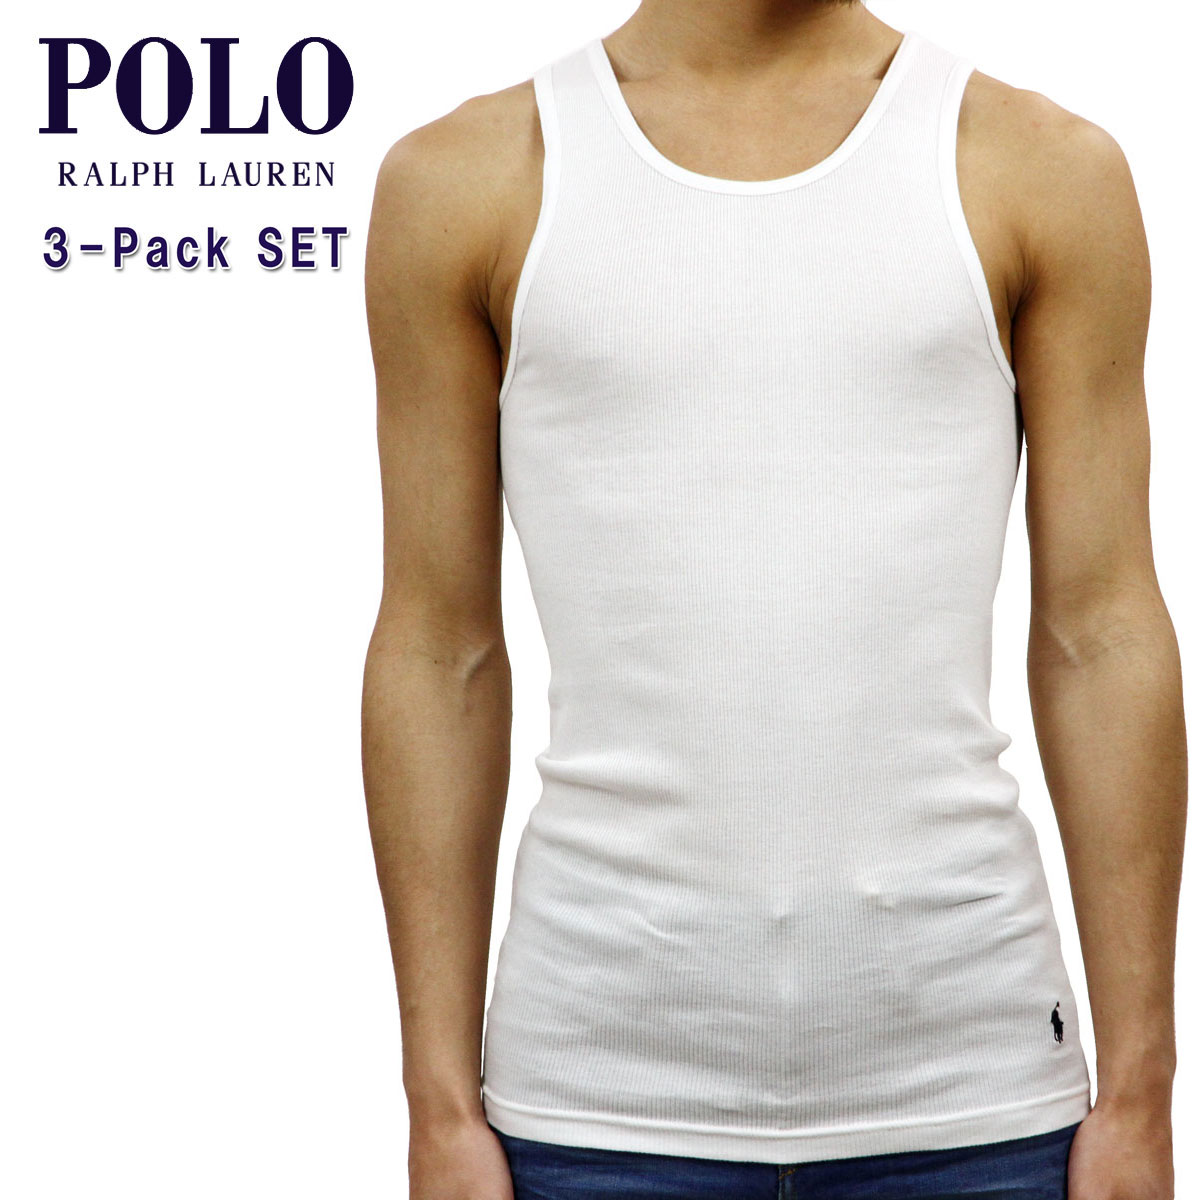 2b7981ec76 Polo Ralph Lauren POLO RALPH LAUREN regular article men underwear tank top  CLASSIC TANK 3-PACK WHITE